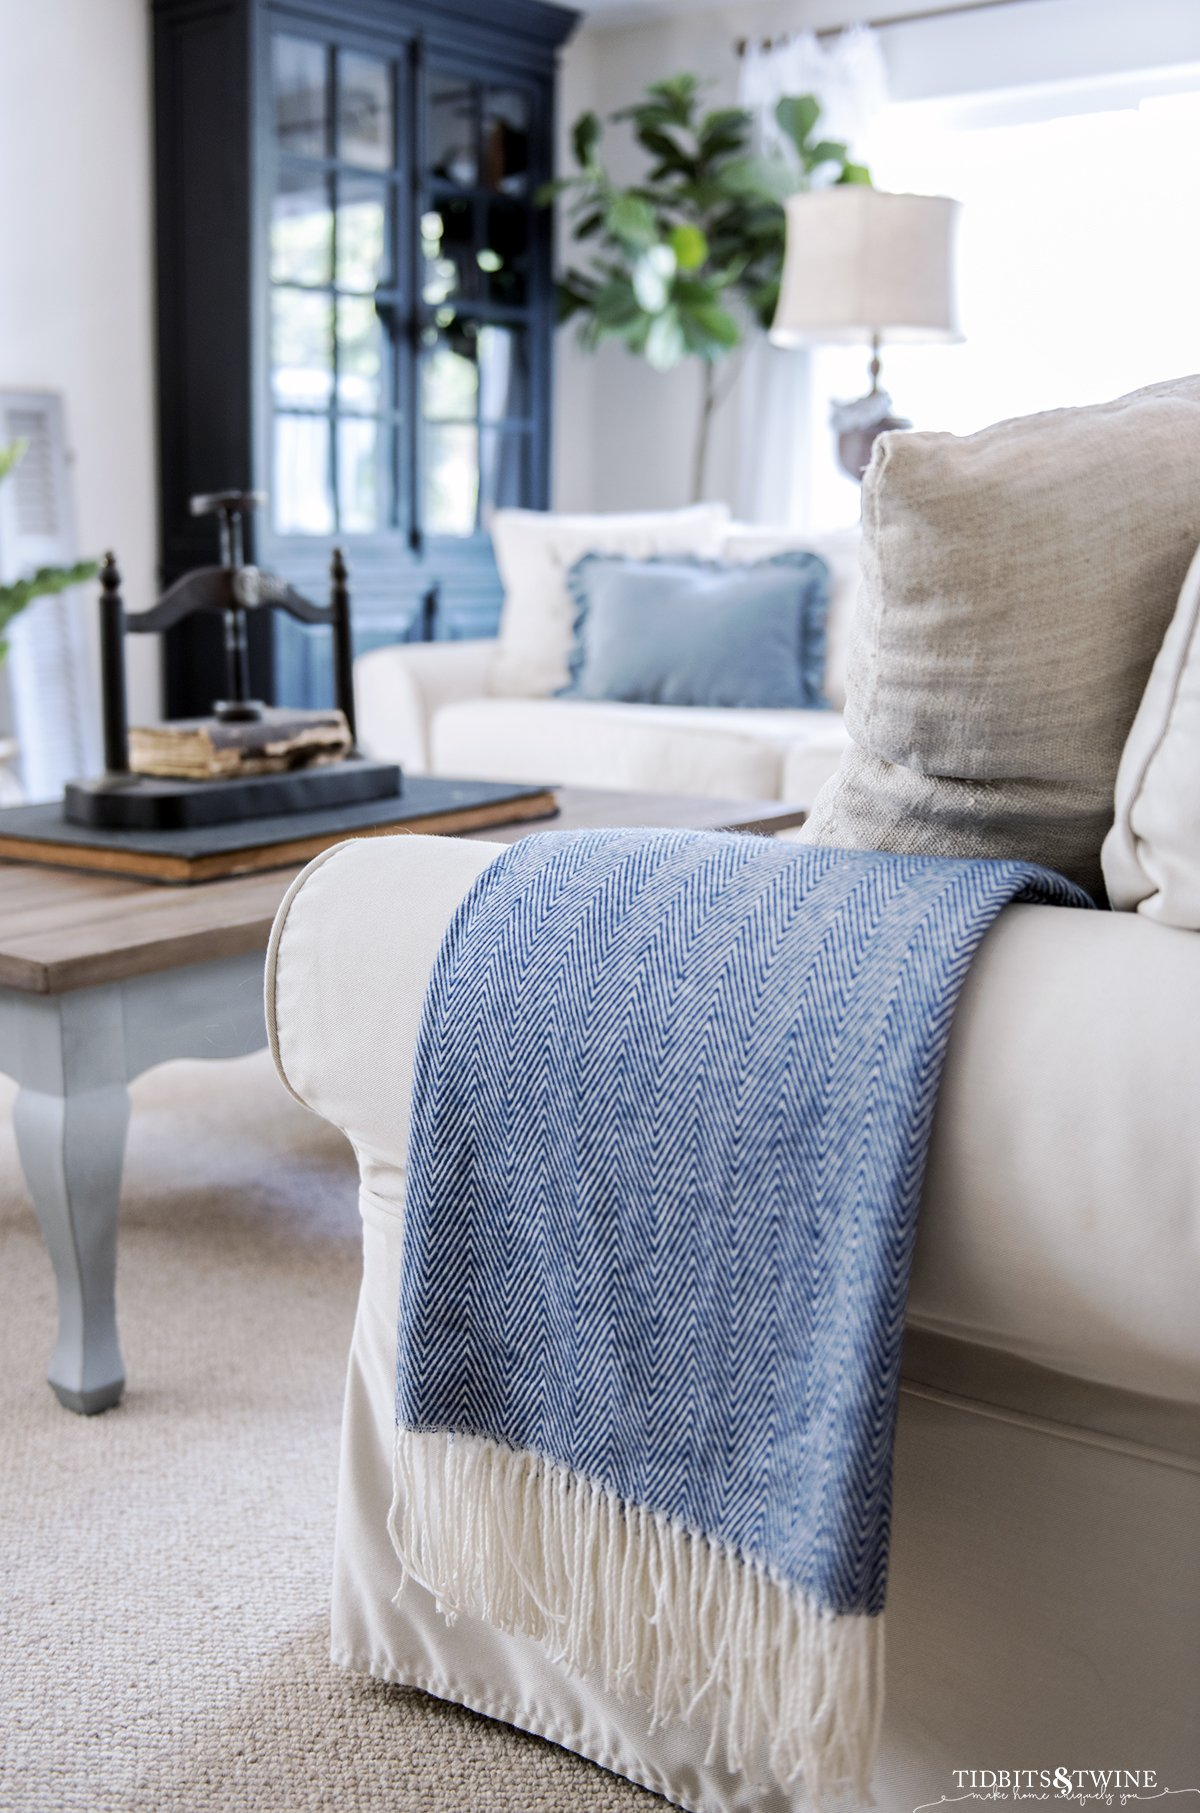 How to Put a Throw on a Couch – 8 Stylish Options